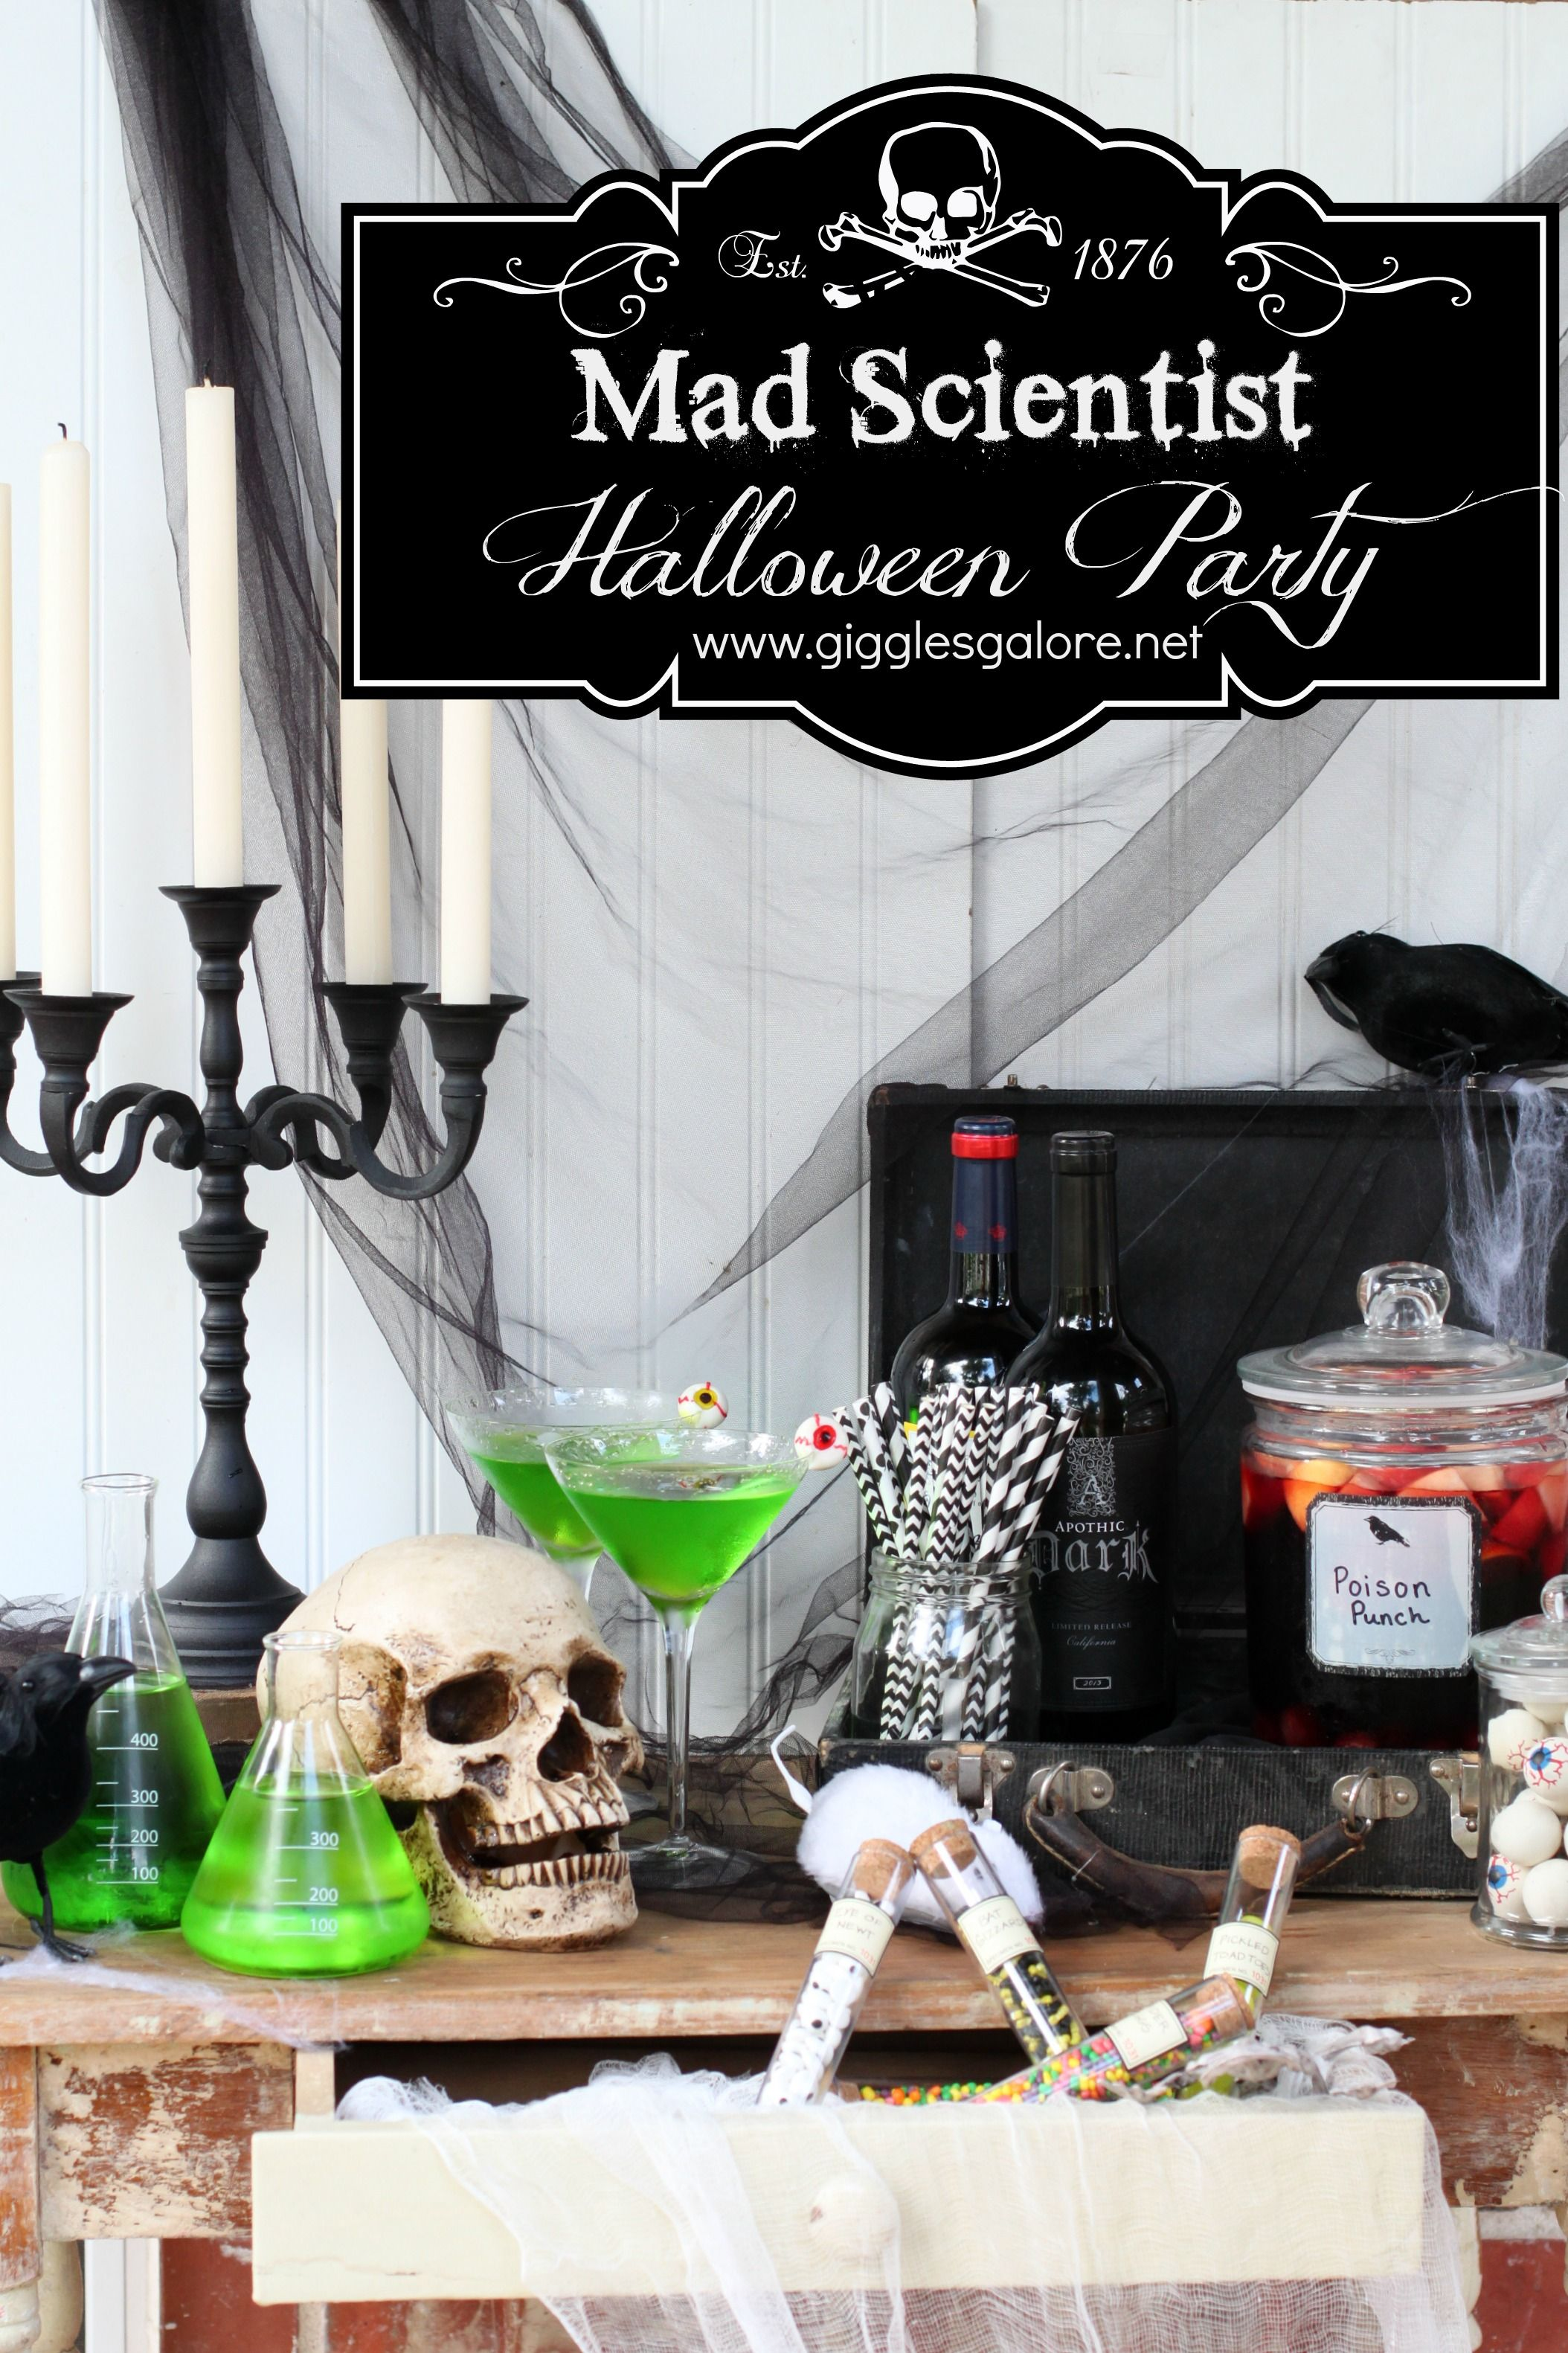 Beautiful Crazy Dinner Party Ideas Part - 7: Mad Scientist Halloween Party Ideas